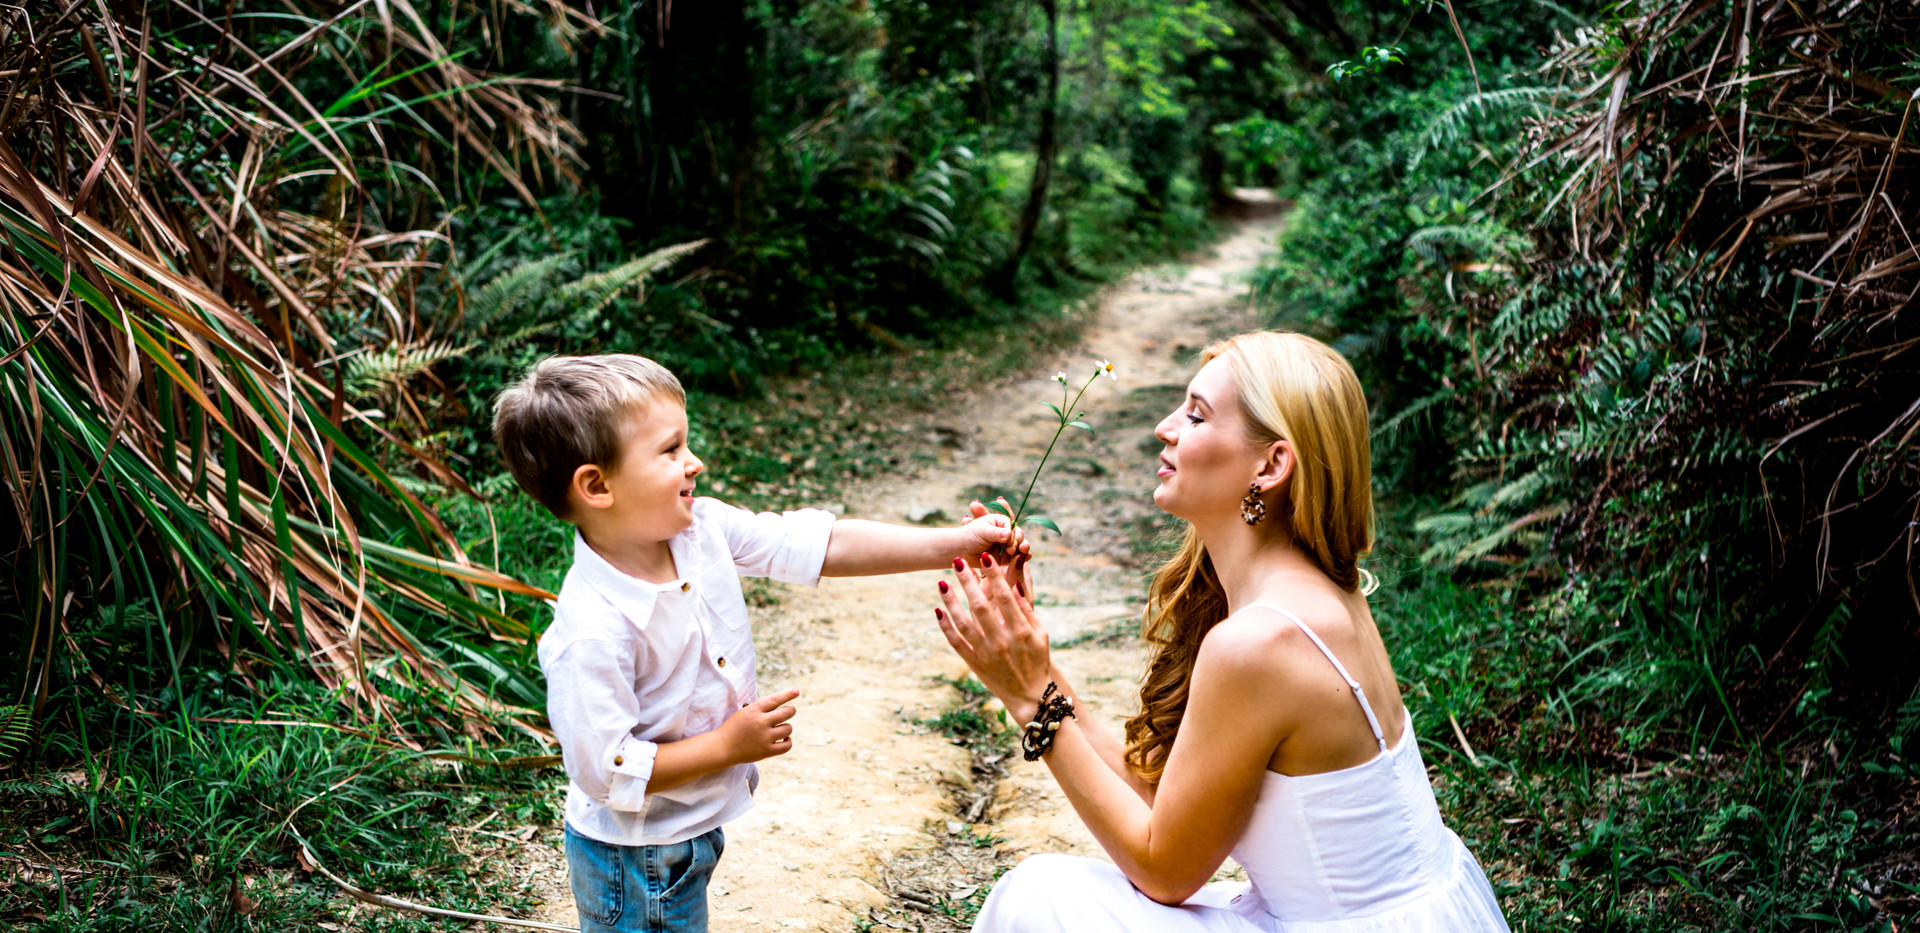 Boy giving her mom a white flower